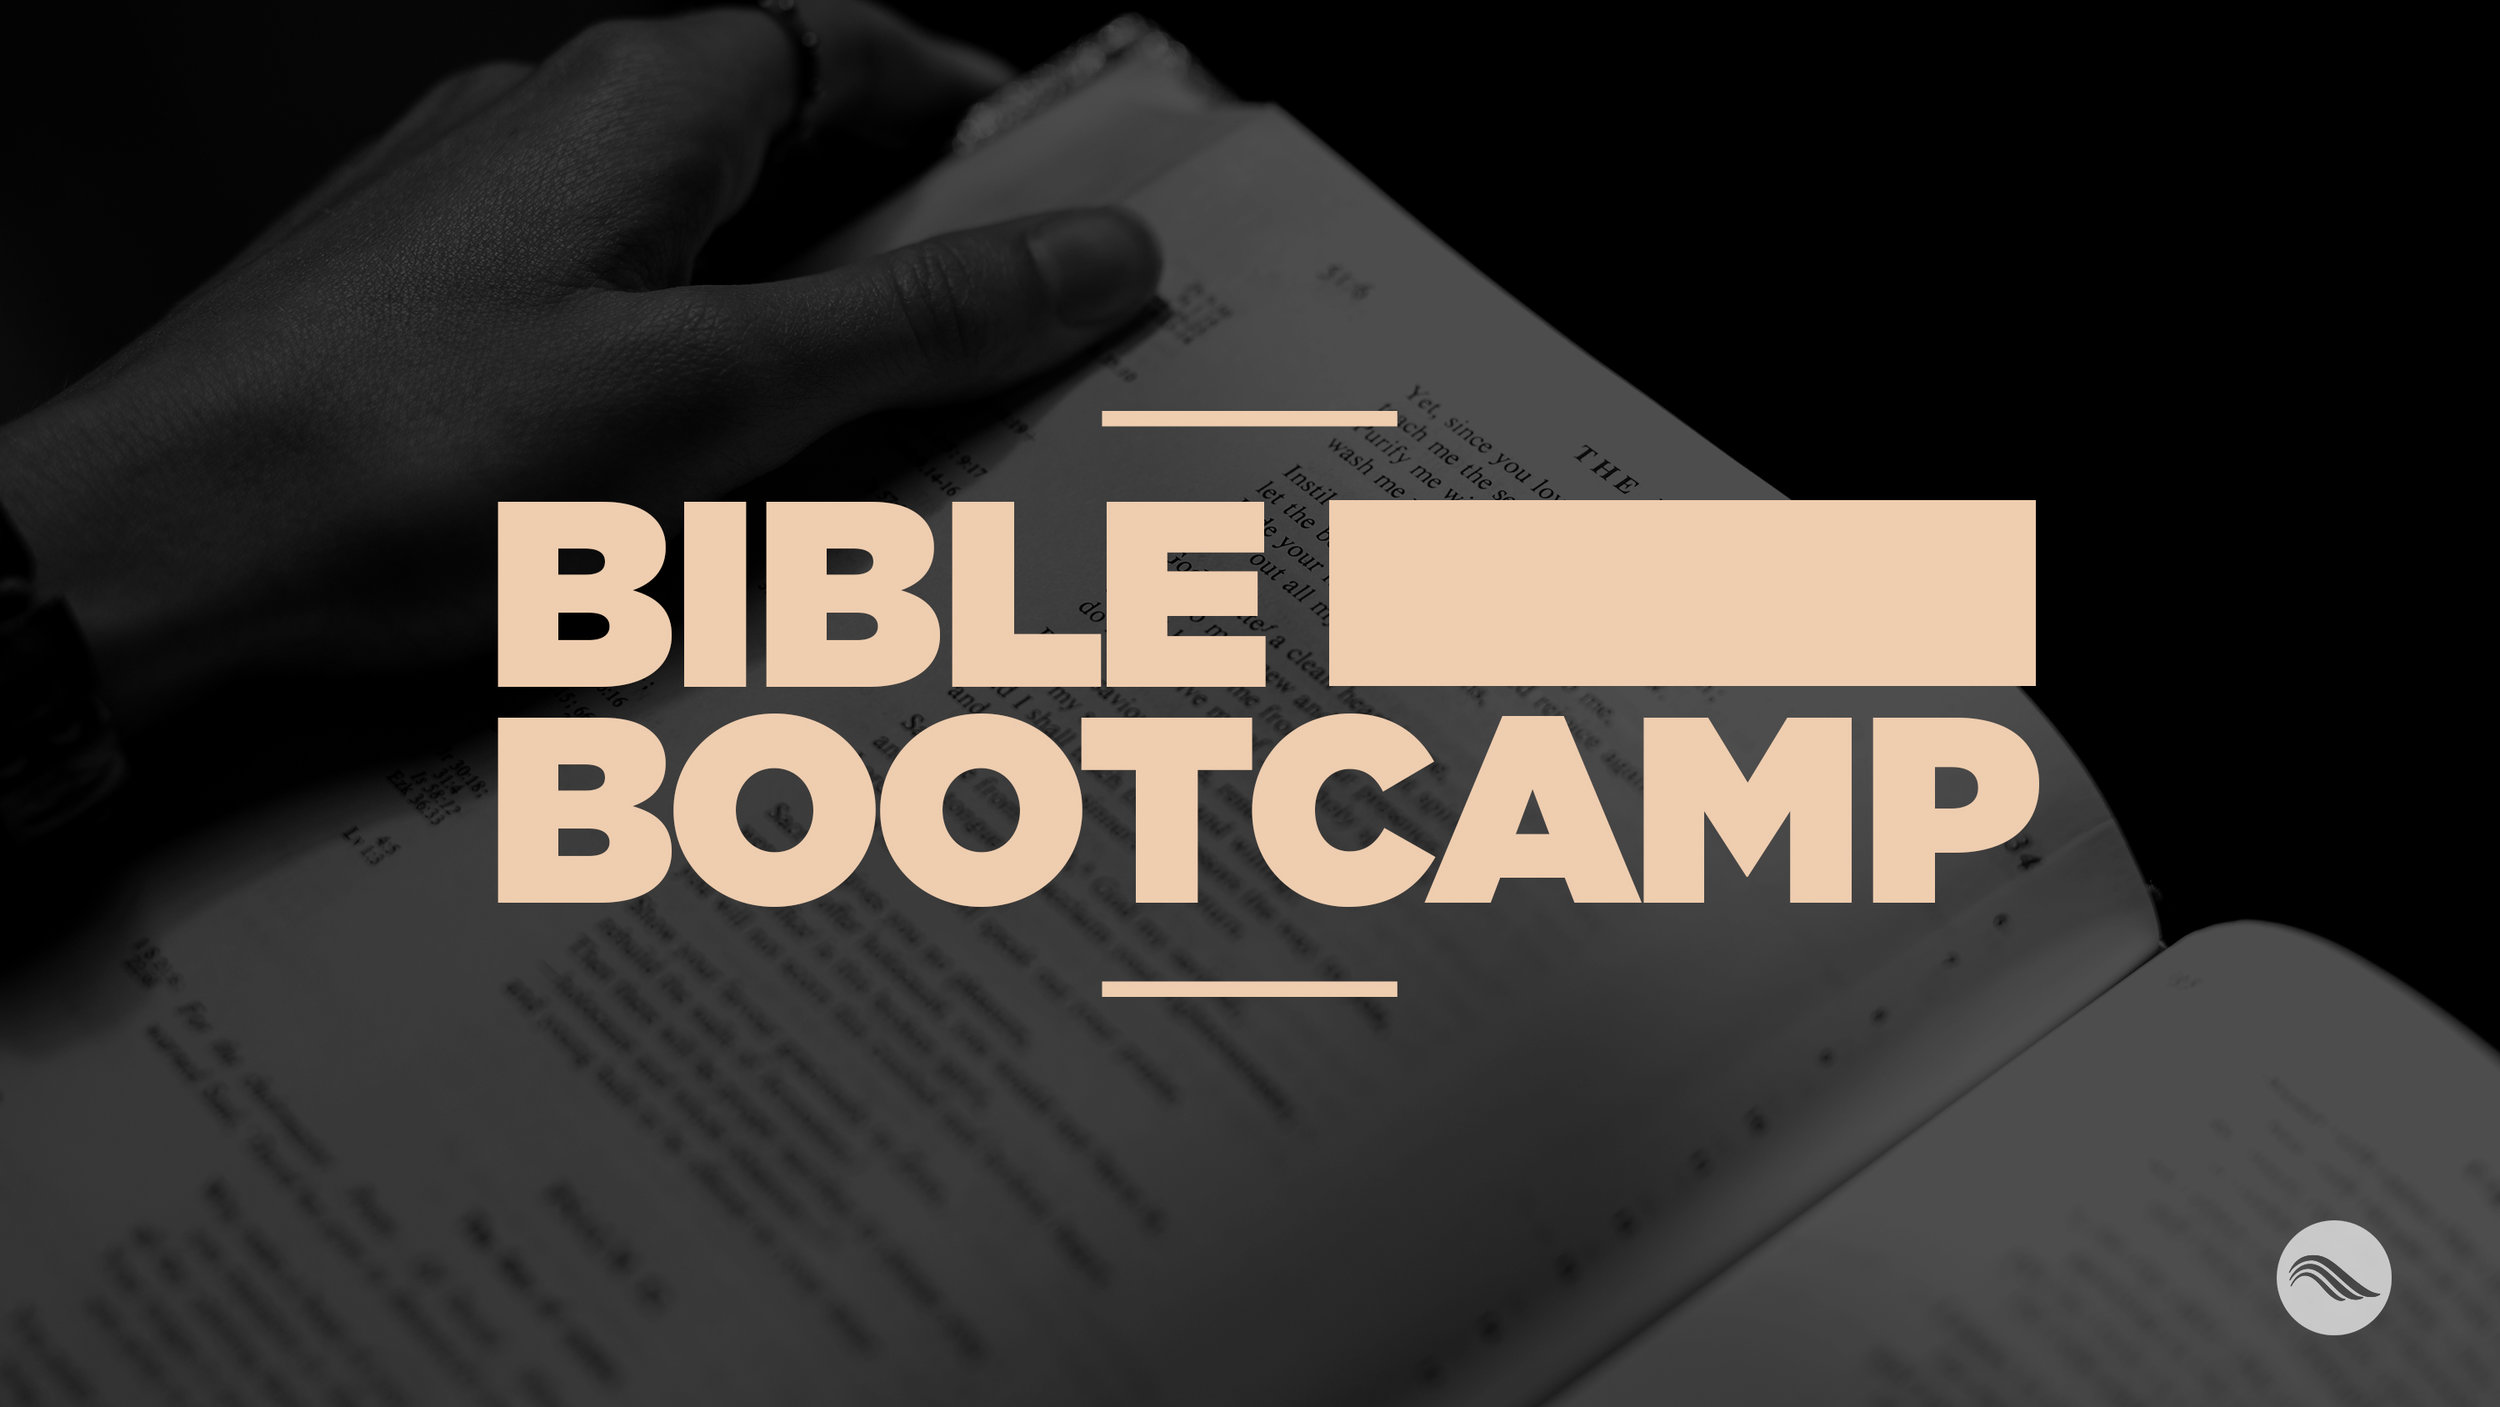 Bible Bootcamp_16x9.jpg